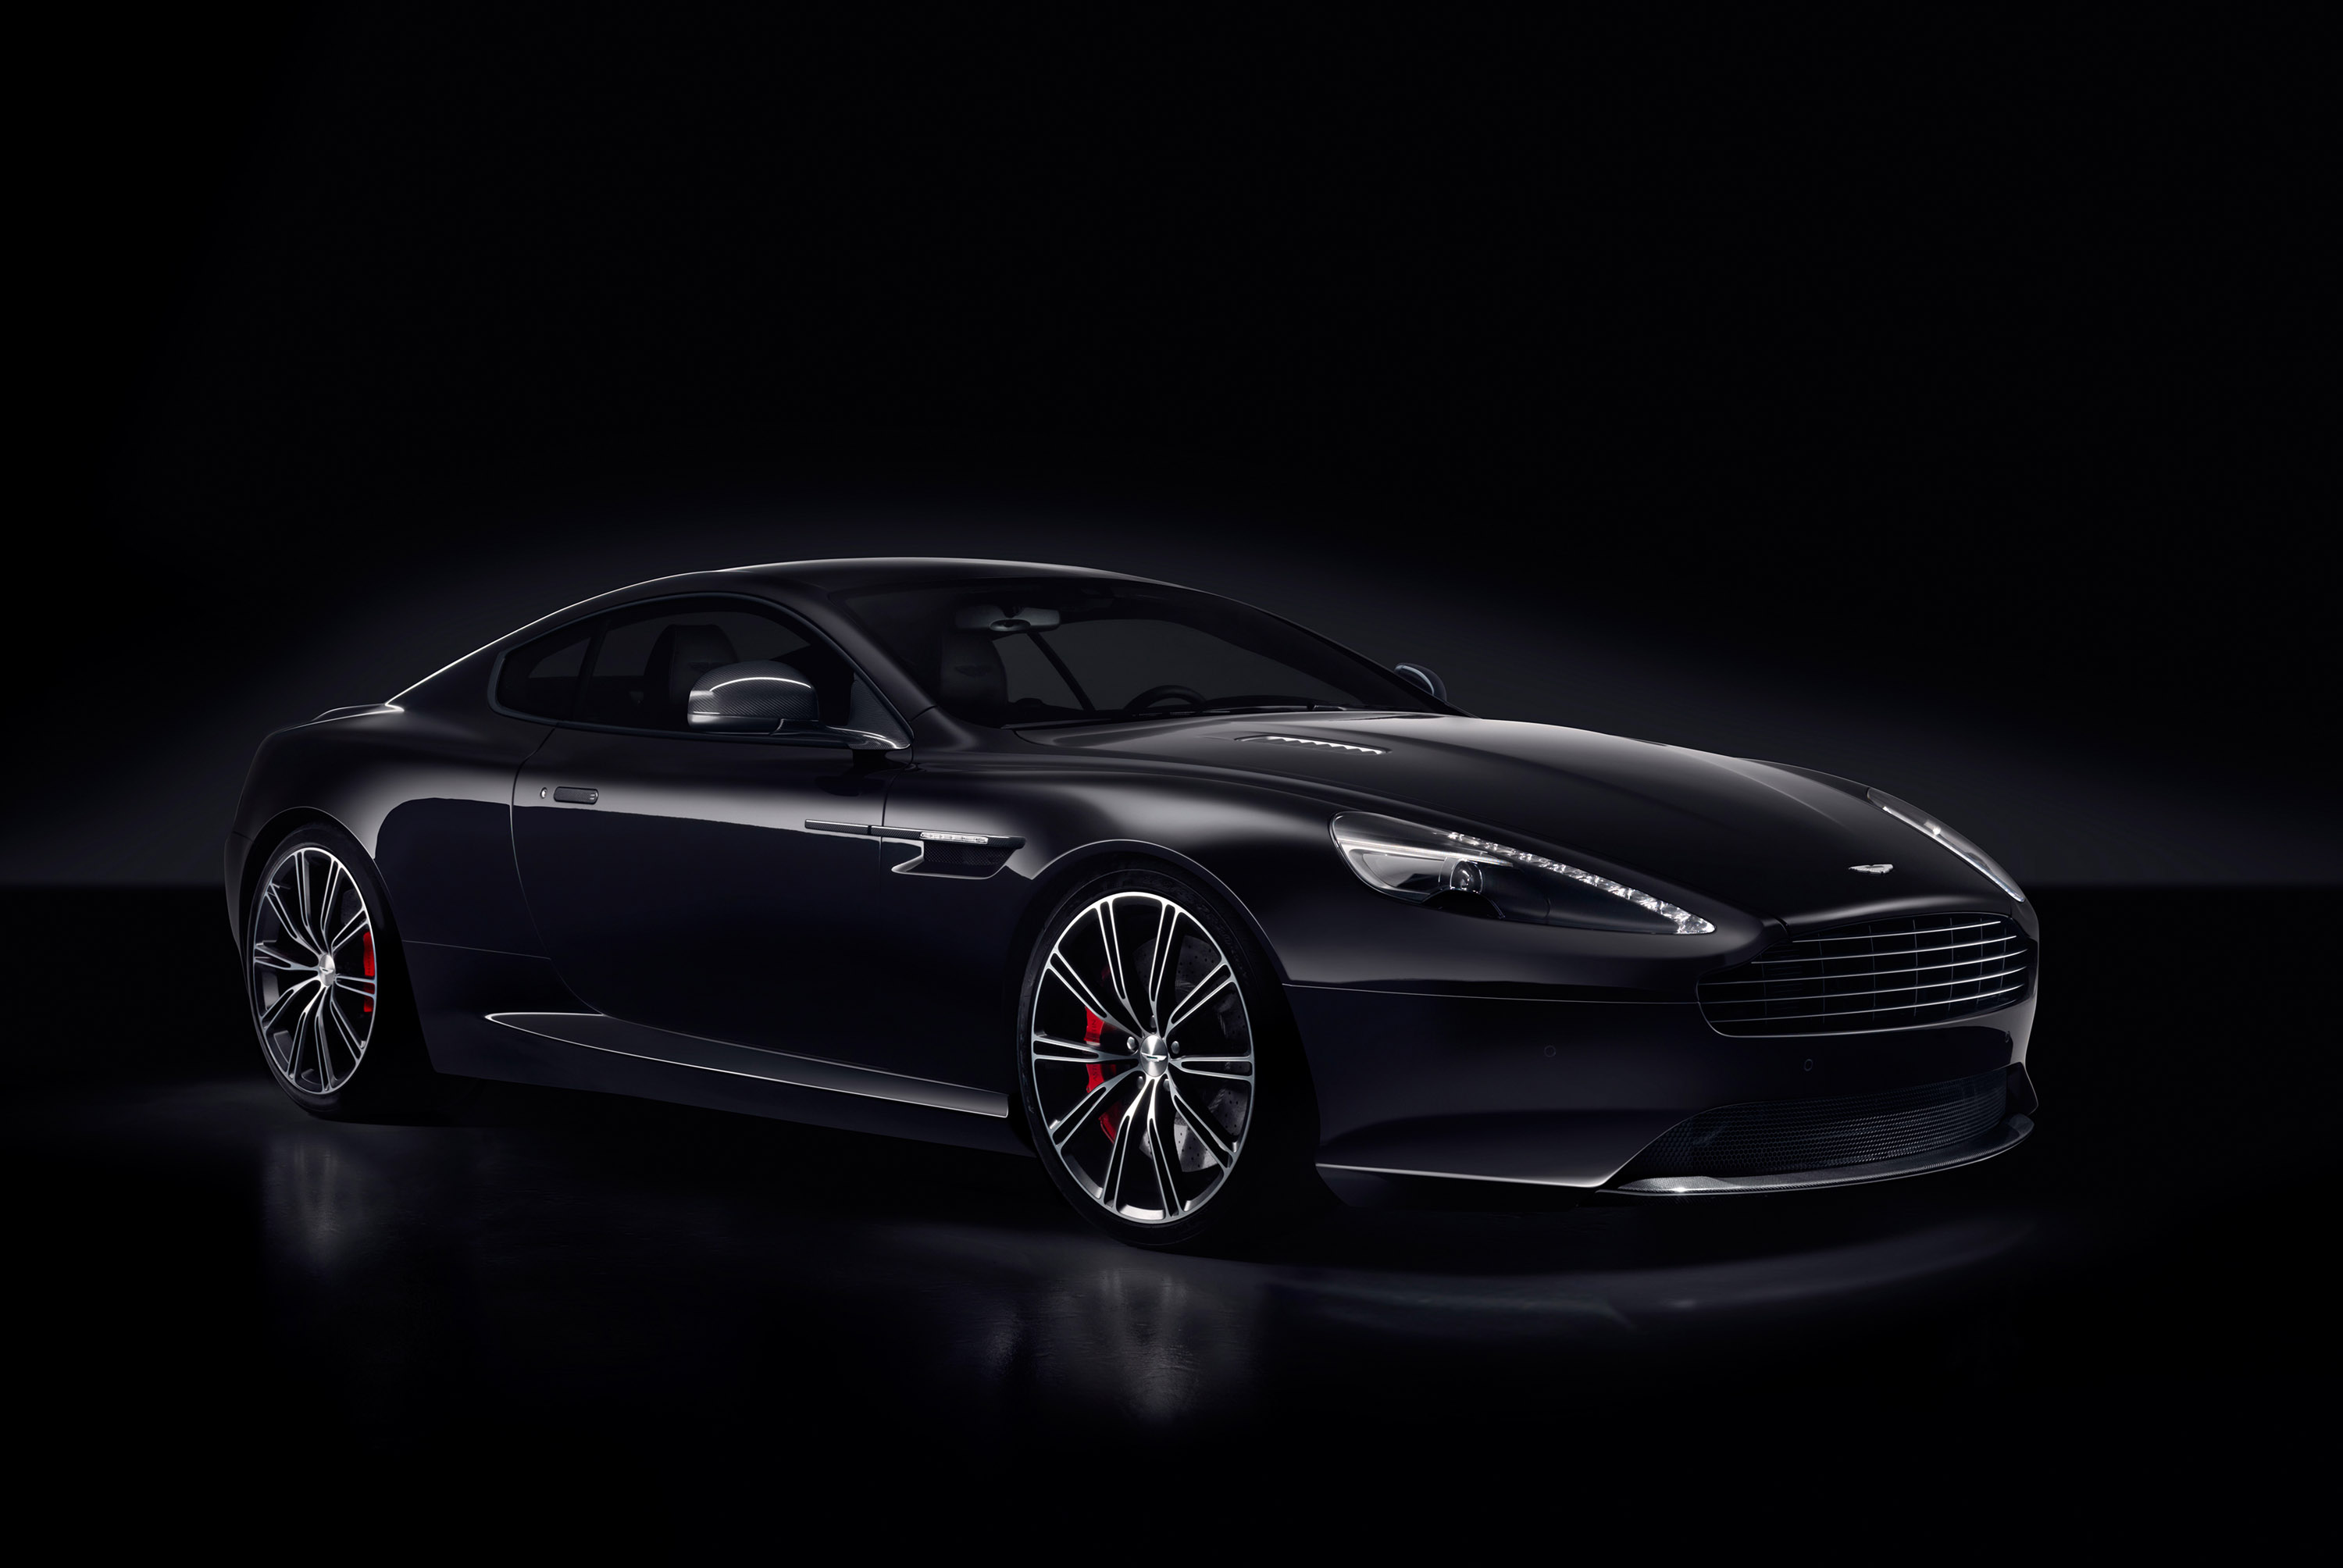 2014 Aston Martin V8 Vantage N430 And DB9 Carbon Black And